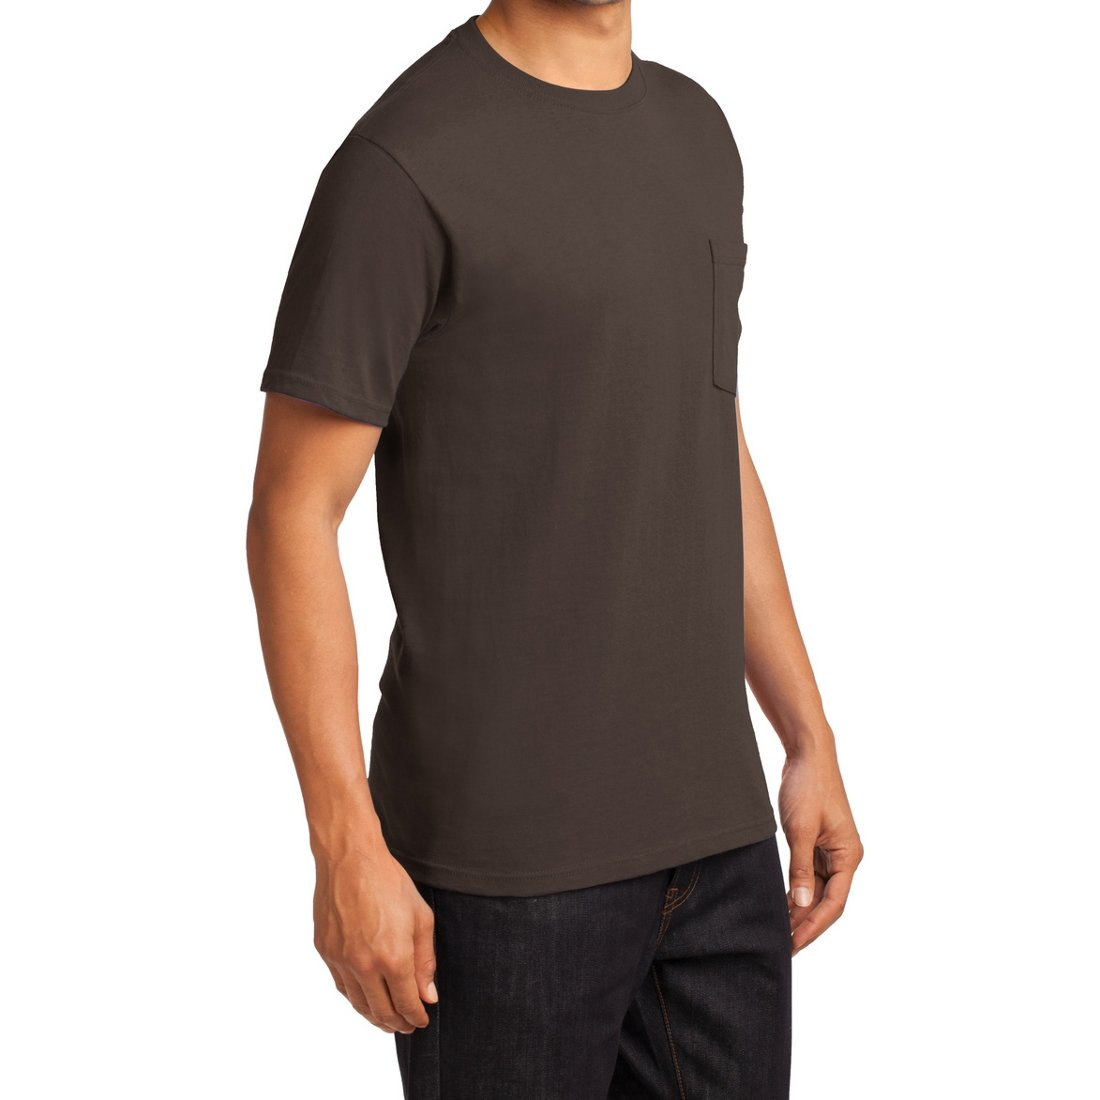 Men's Essential T Shirt with Pocket Brown